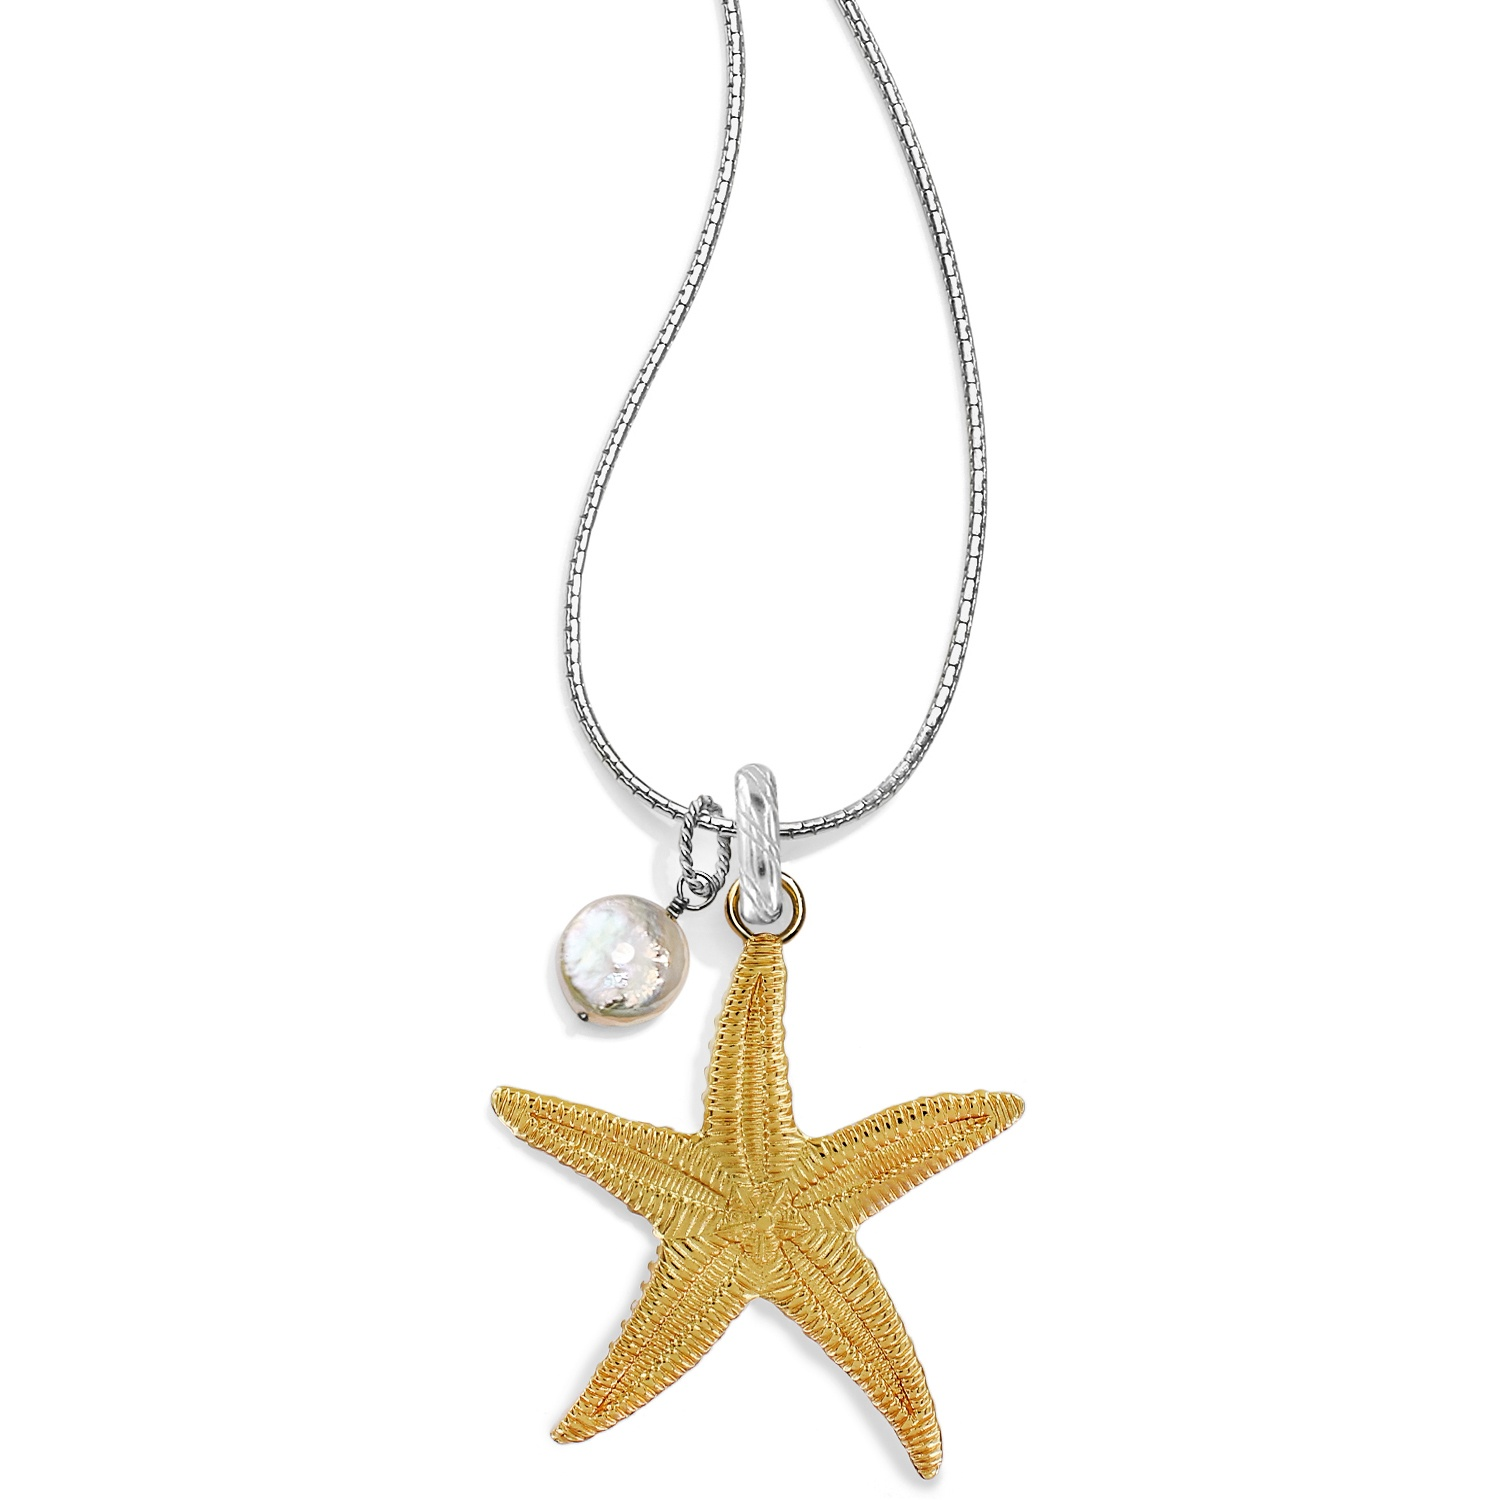 7bce991c5 Under the Sea Under The Sea Convertible Starfish Necklace Necklaces